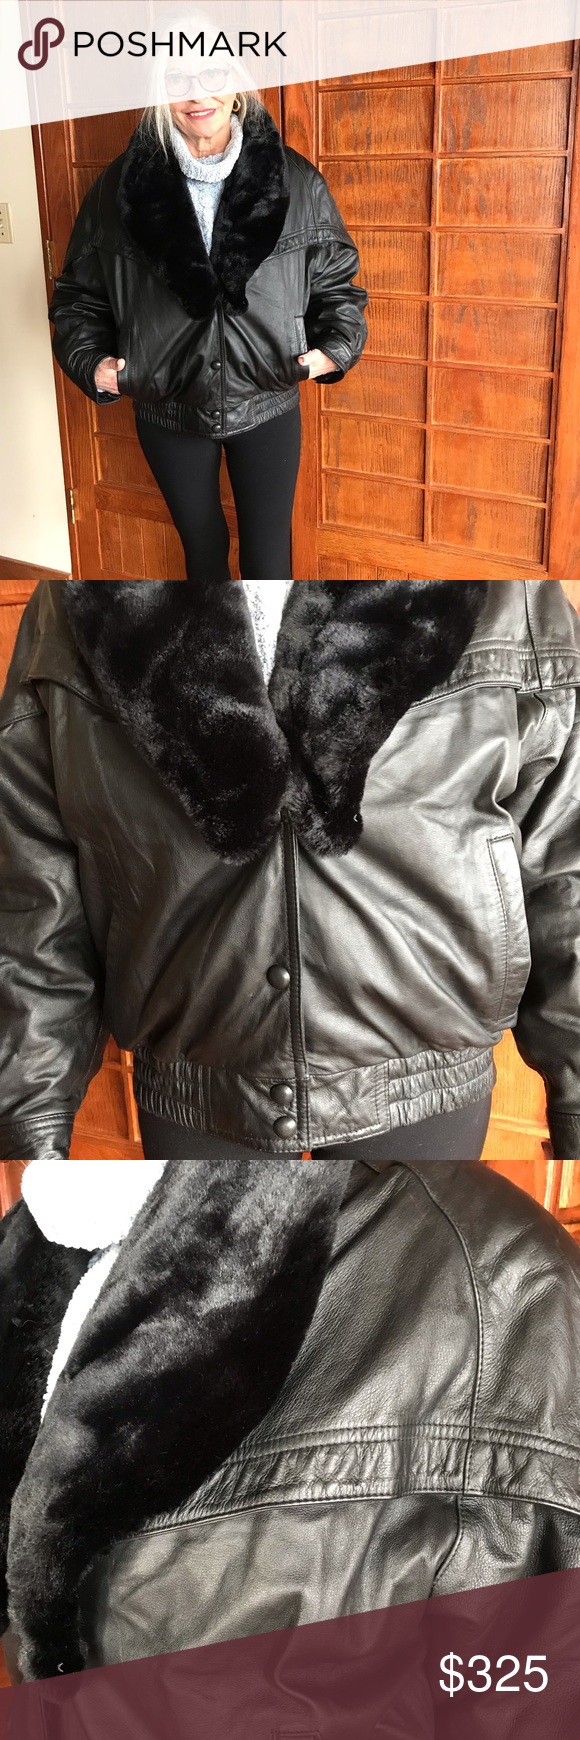 Wilsons Leather Thinsulate Jacket This super warm jacket